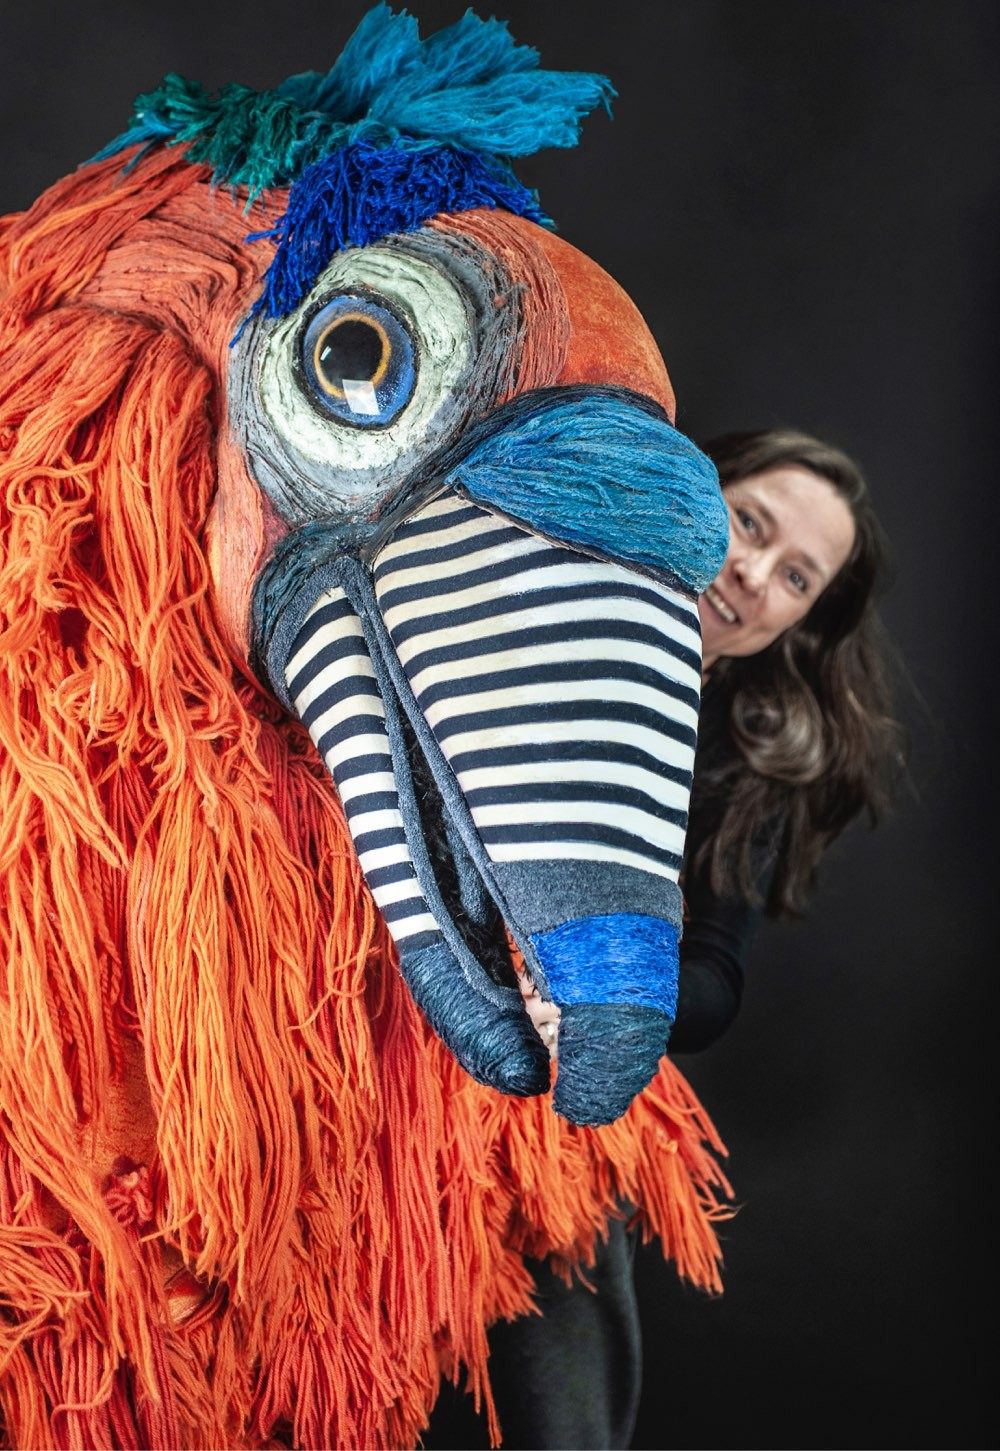 Tiina and Casanova the Giant Parrot